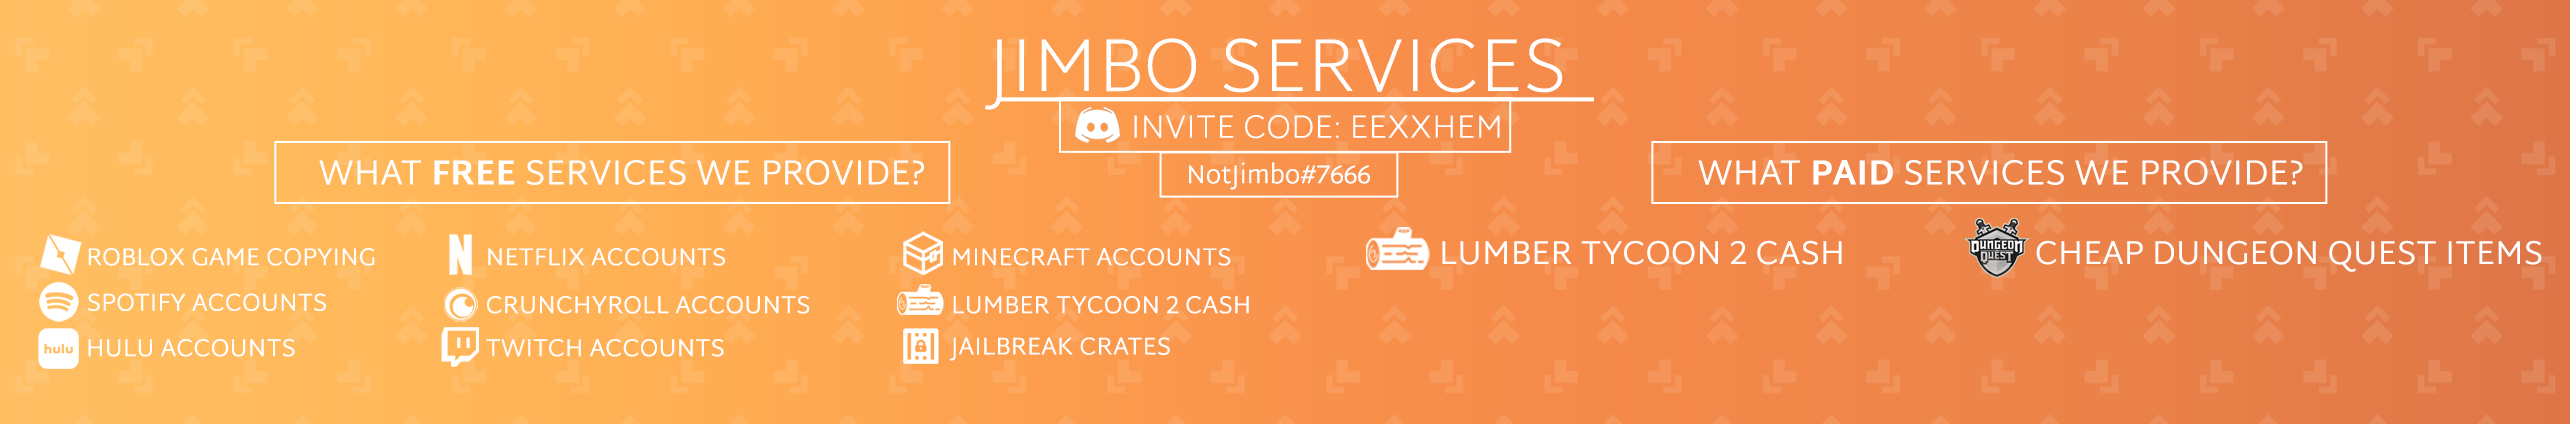 ⭐✅[FREE] FREE ACCOUNTS, ROBLOX GAME COPYING AND FREE